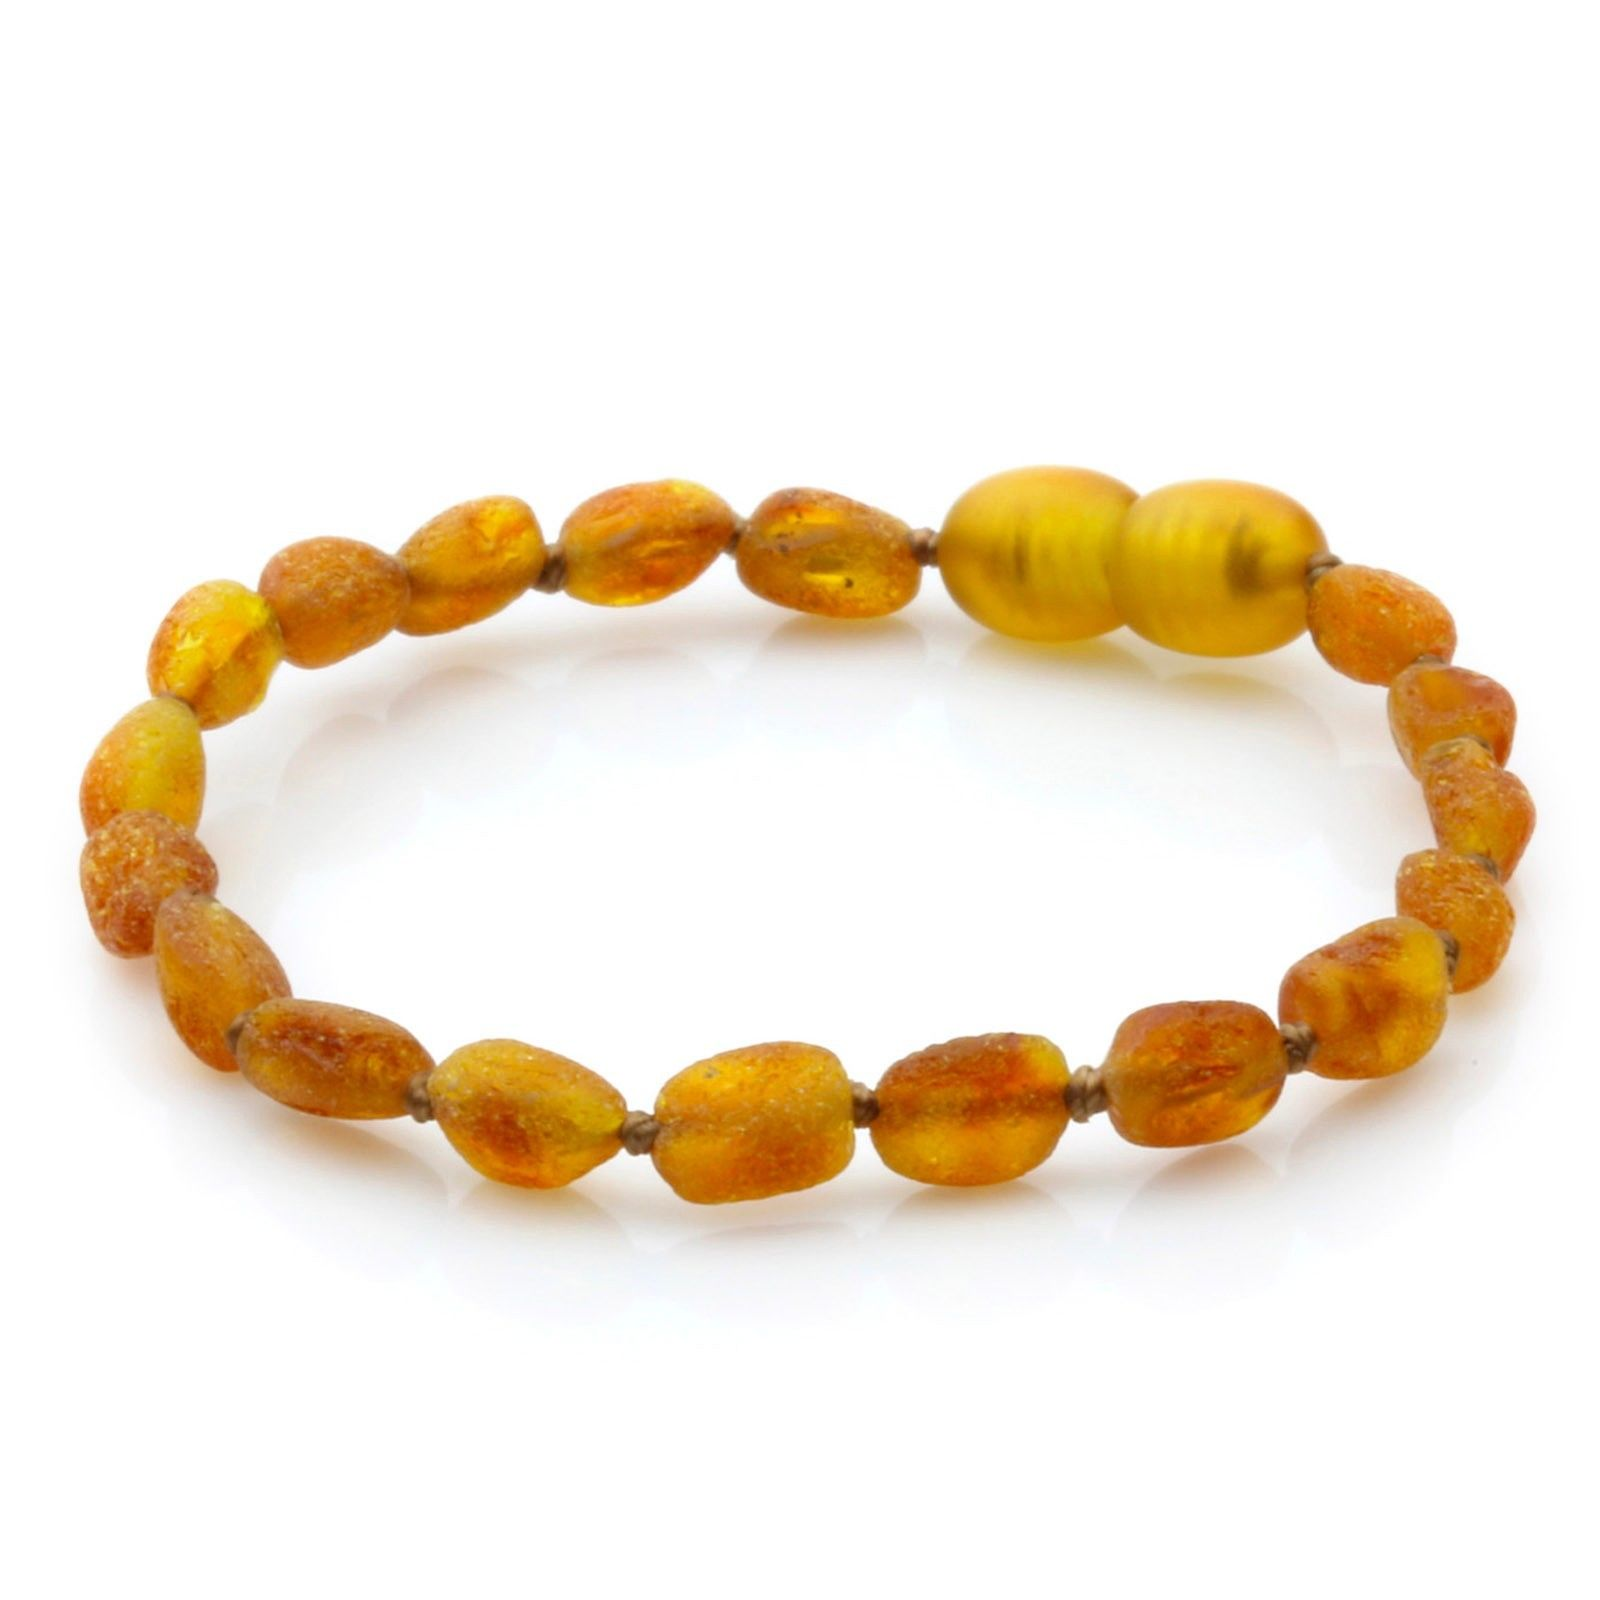 JWG100 Natural Raw unpolished Baltic Amber Bracelet 18cm